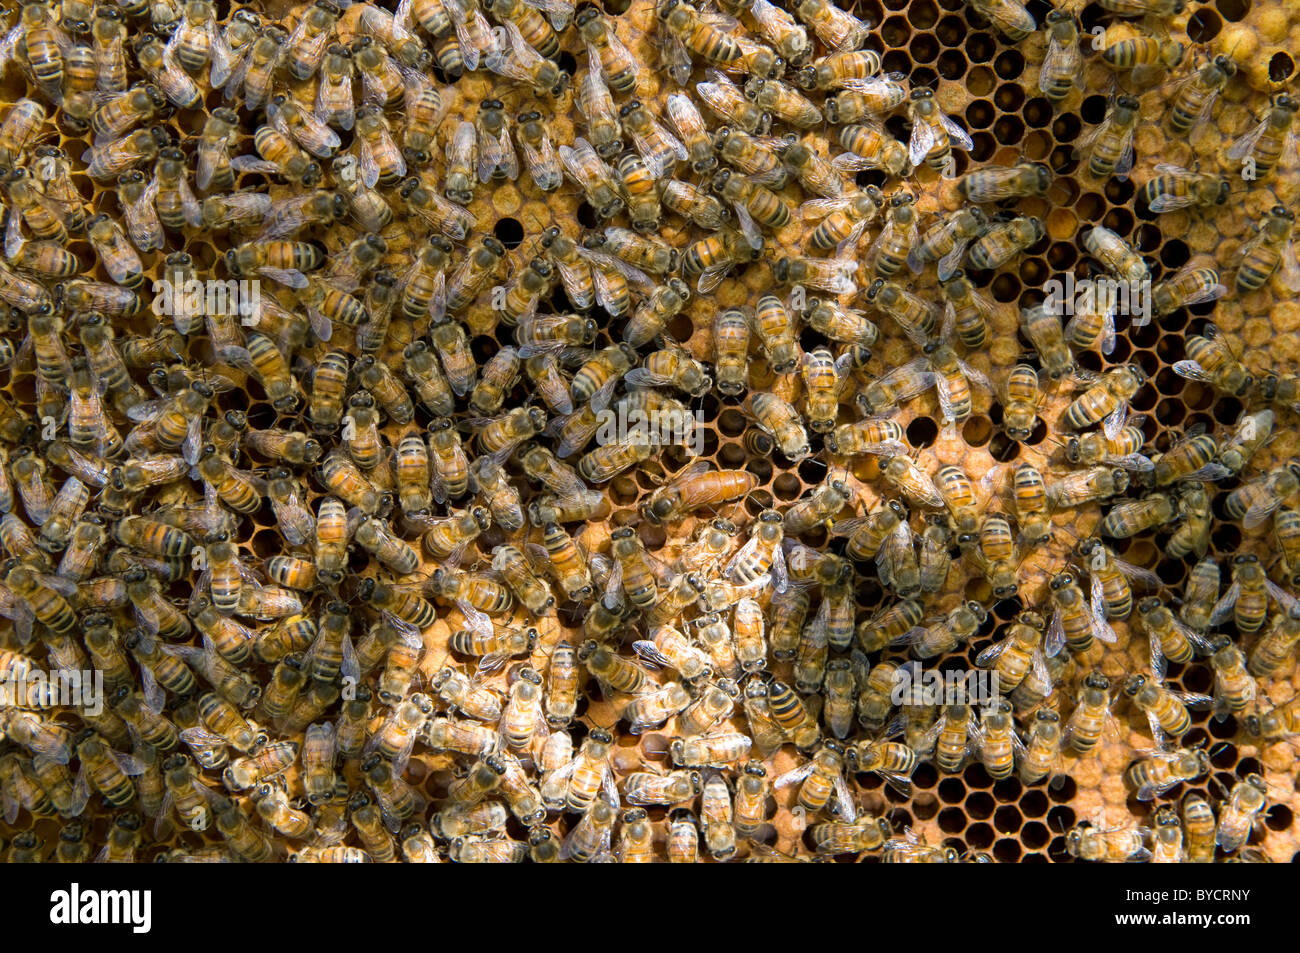 Unmarked queen honeybee Apis mellifera tended by workers - Stock Image